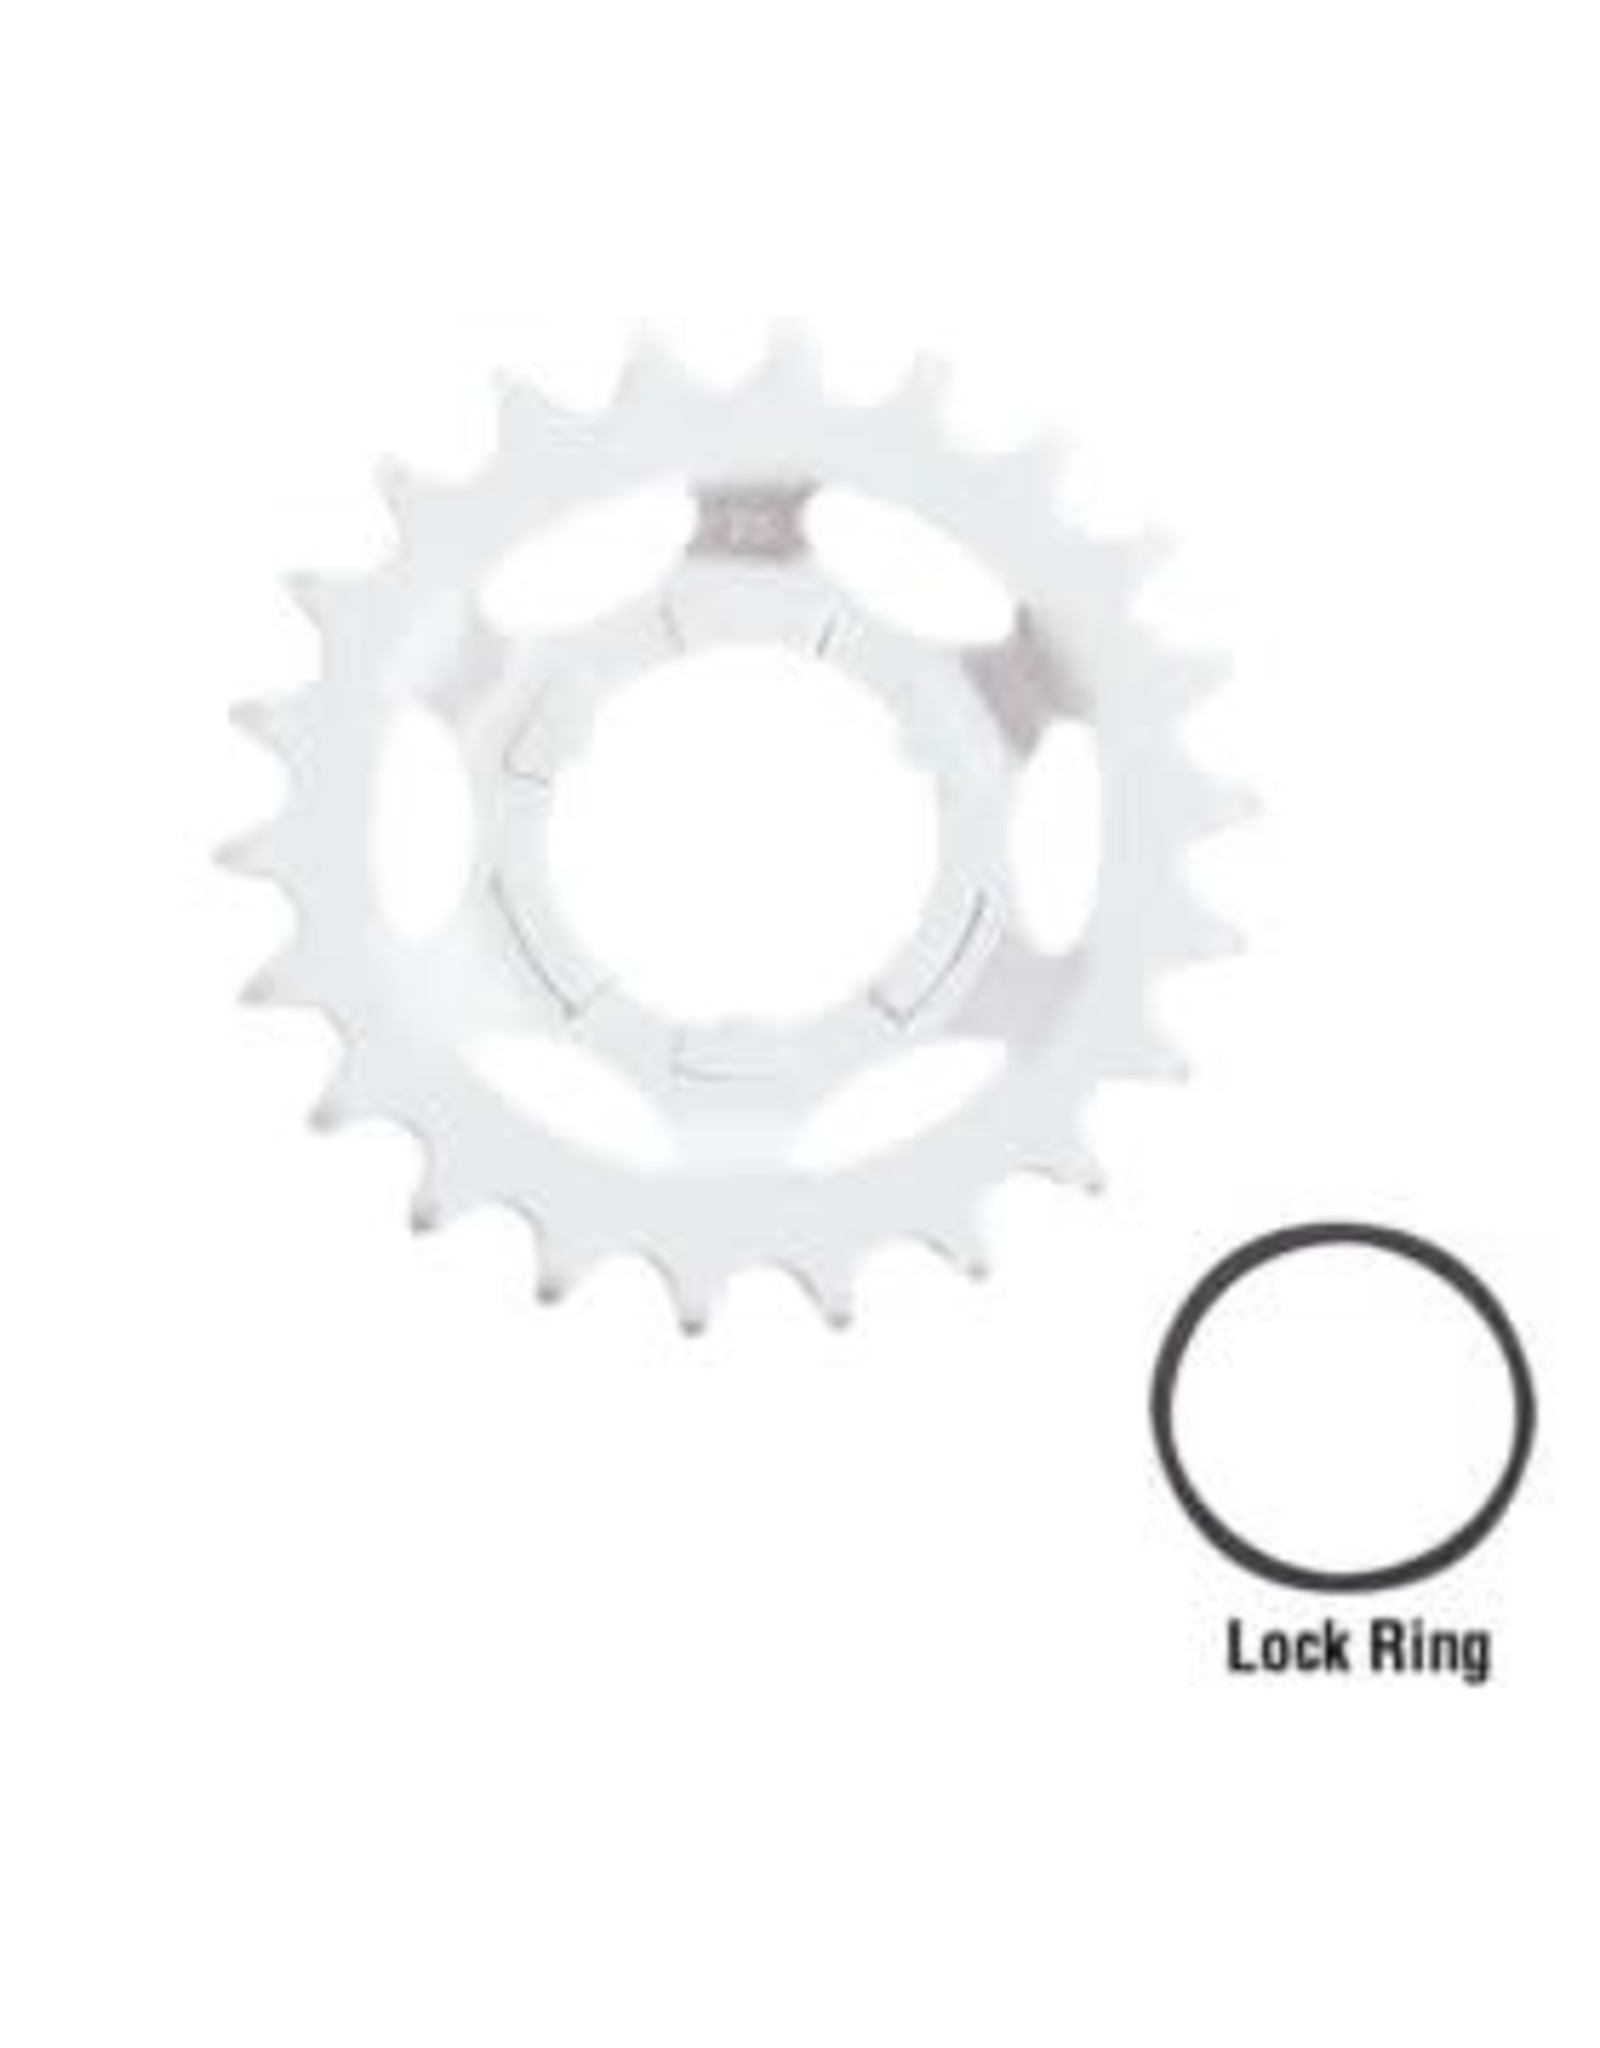 SHIMANO Shimano Replacement Sprockets for Internal Speed Hubs - Y32203620 3S-N Cog 20T - Silver